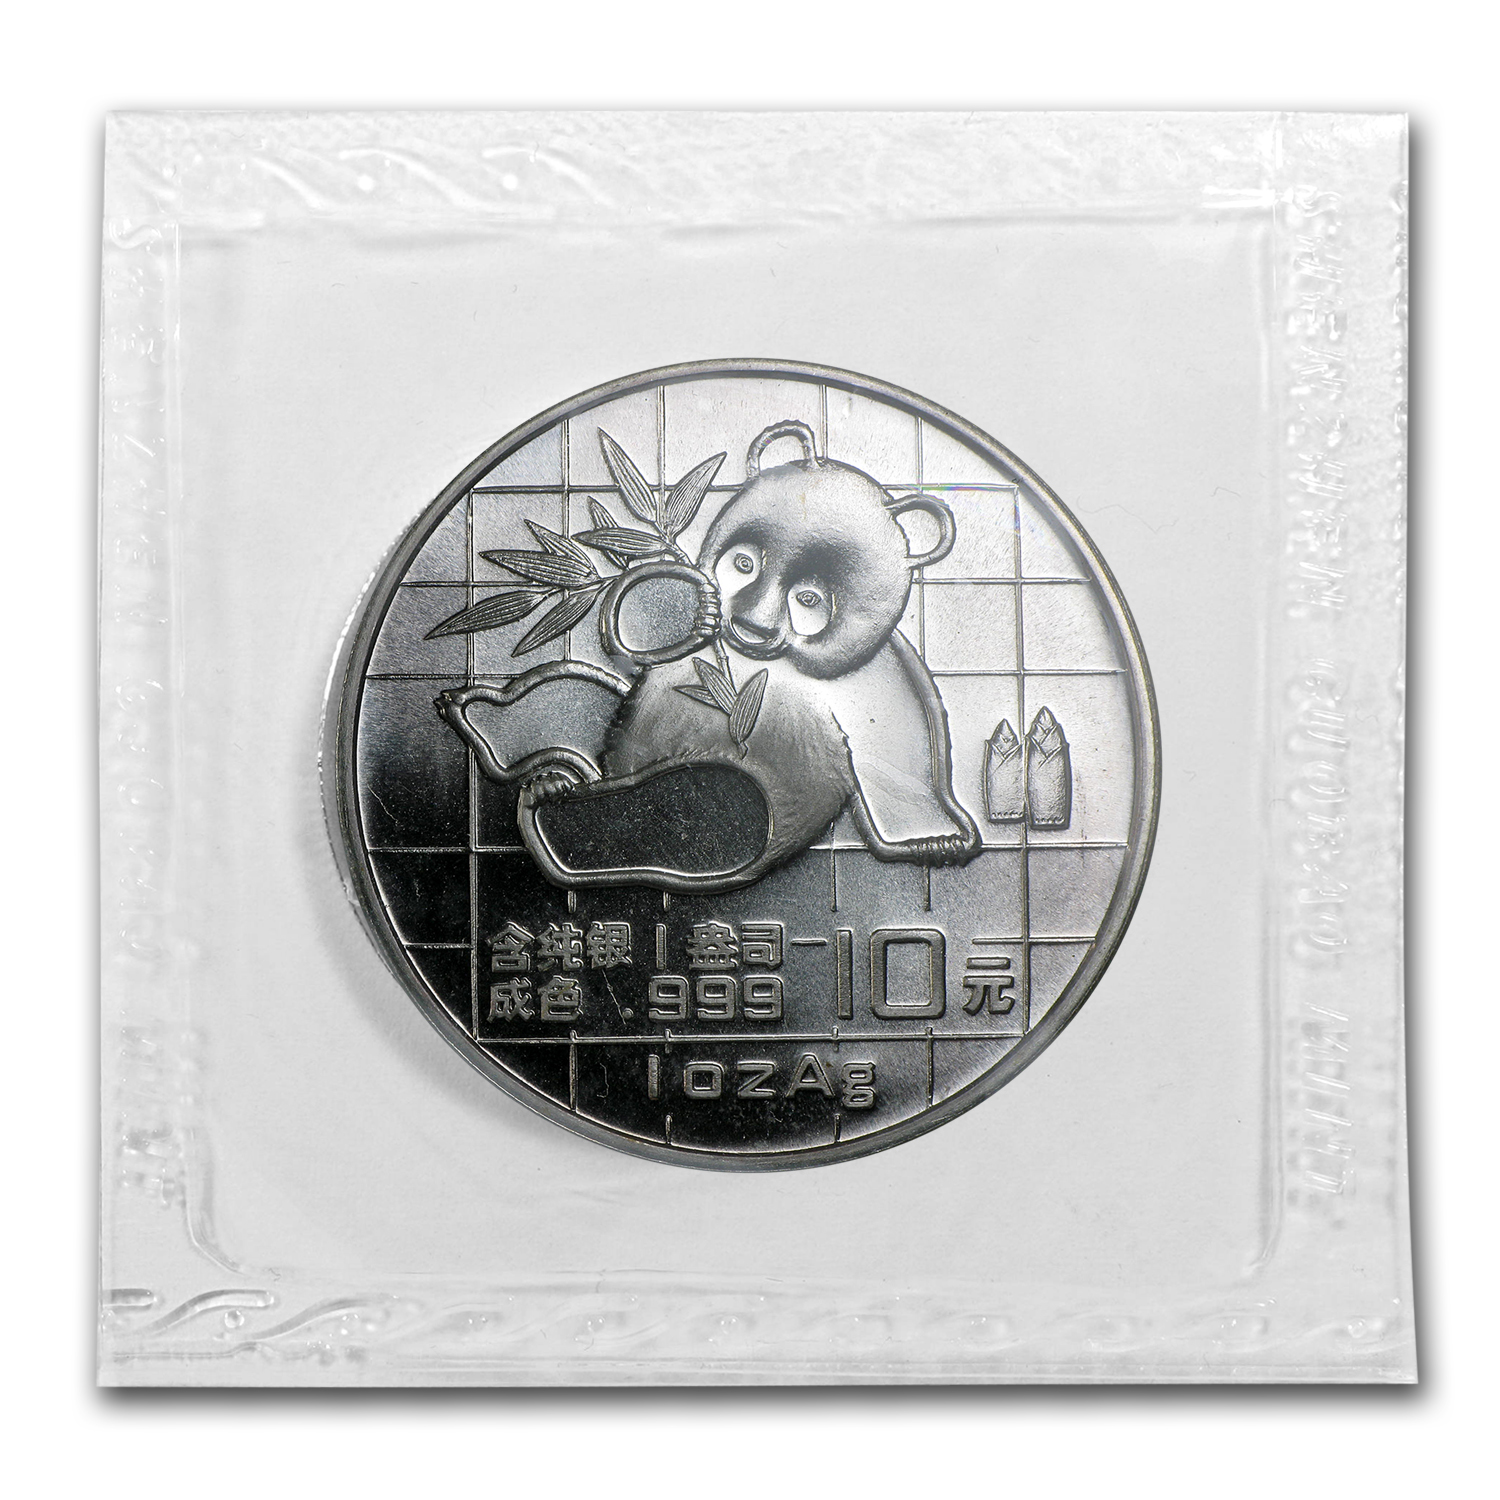 1989 1 oz Silver Chinese Panda - (Sealed)